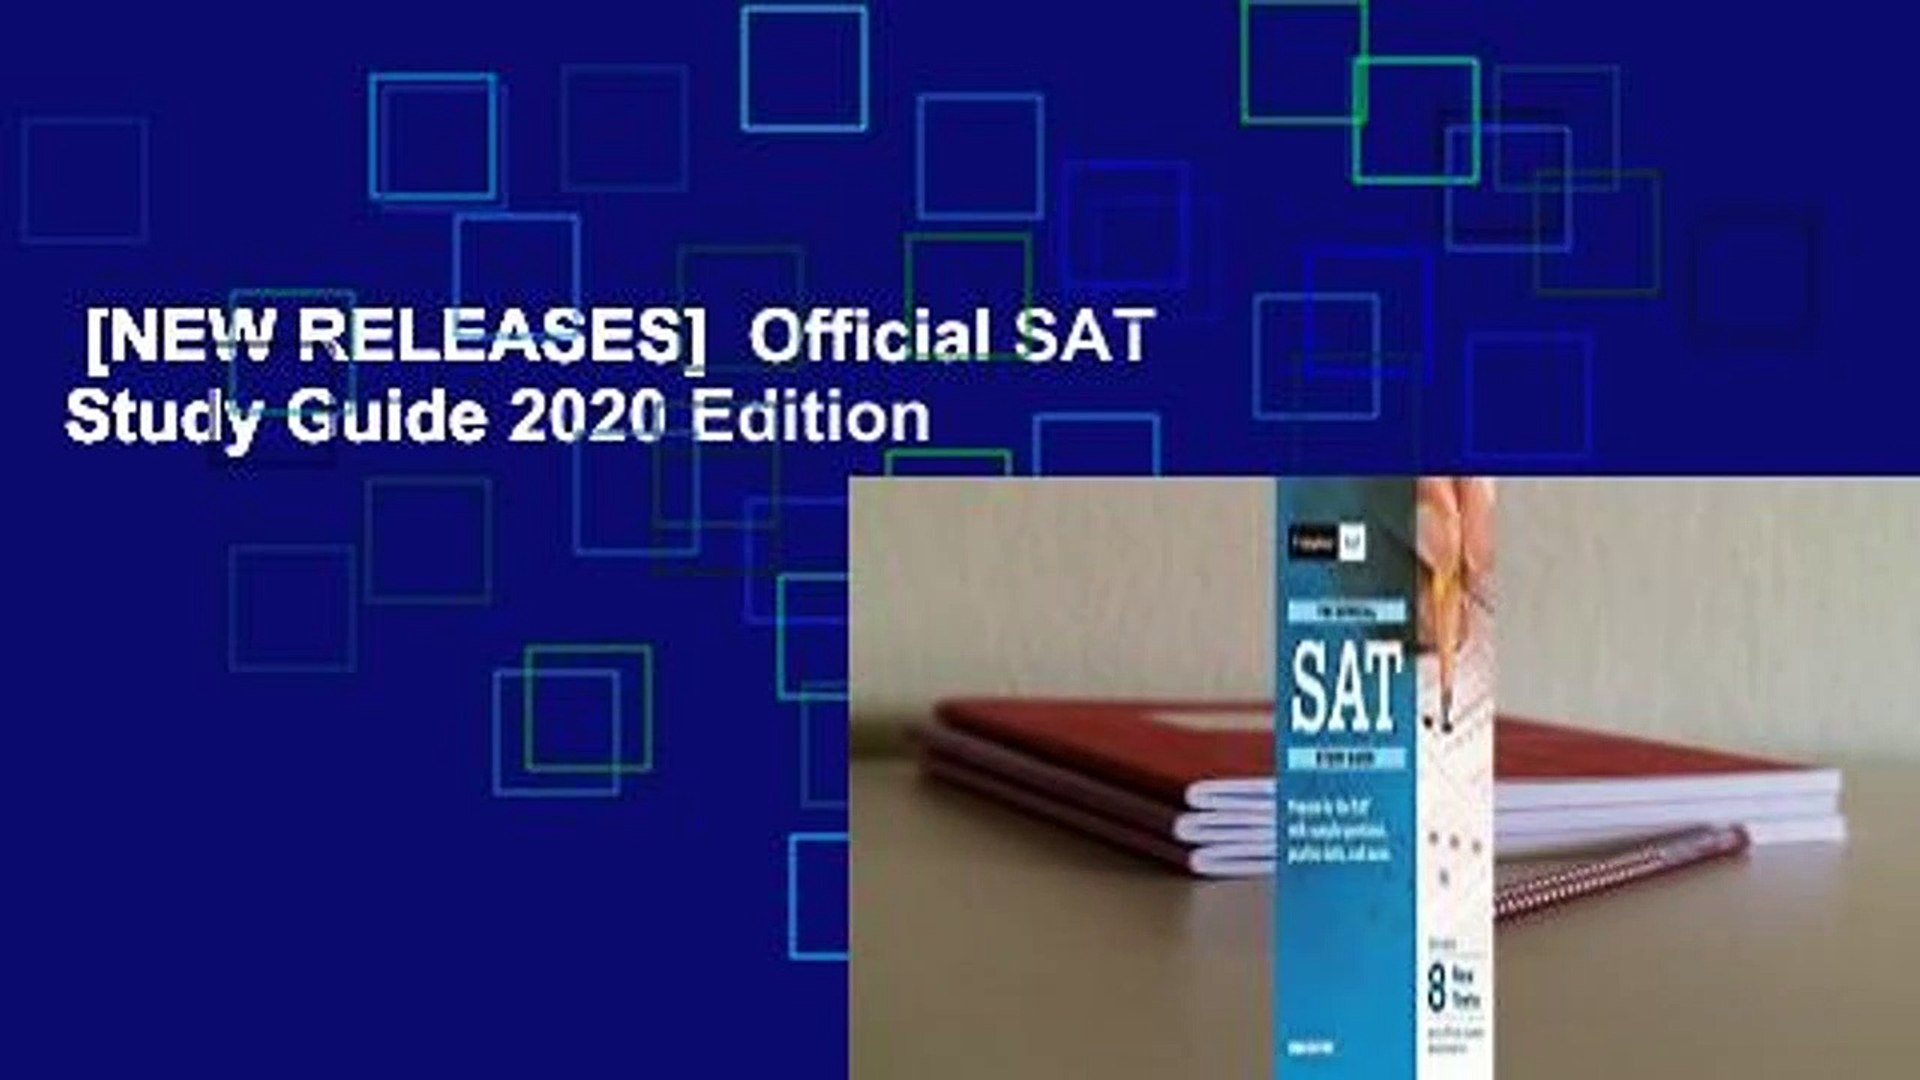 New Metal Releases 2020.New Releases Official Sat Study Guide 2020 Edition